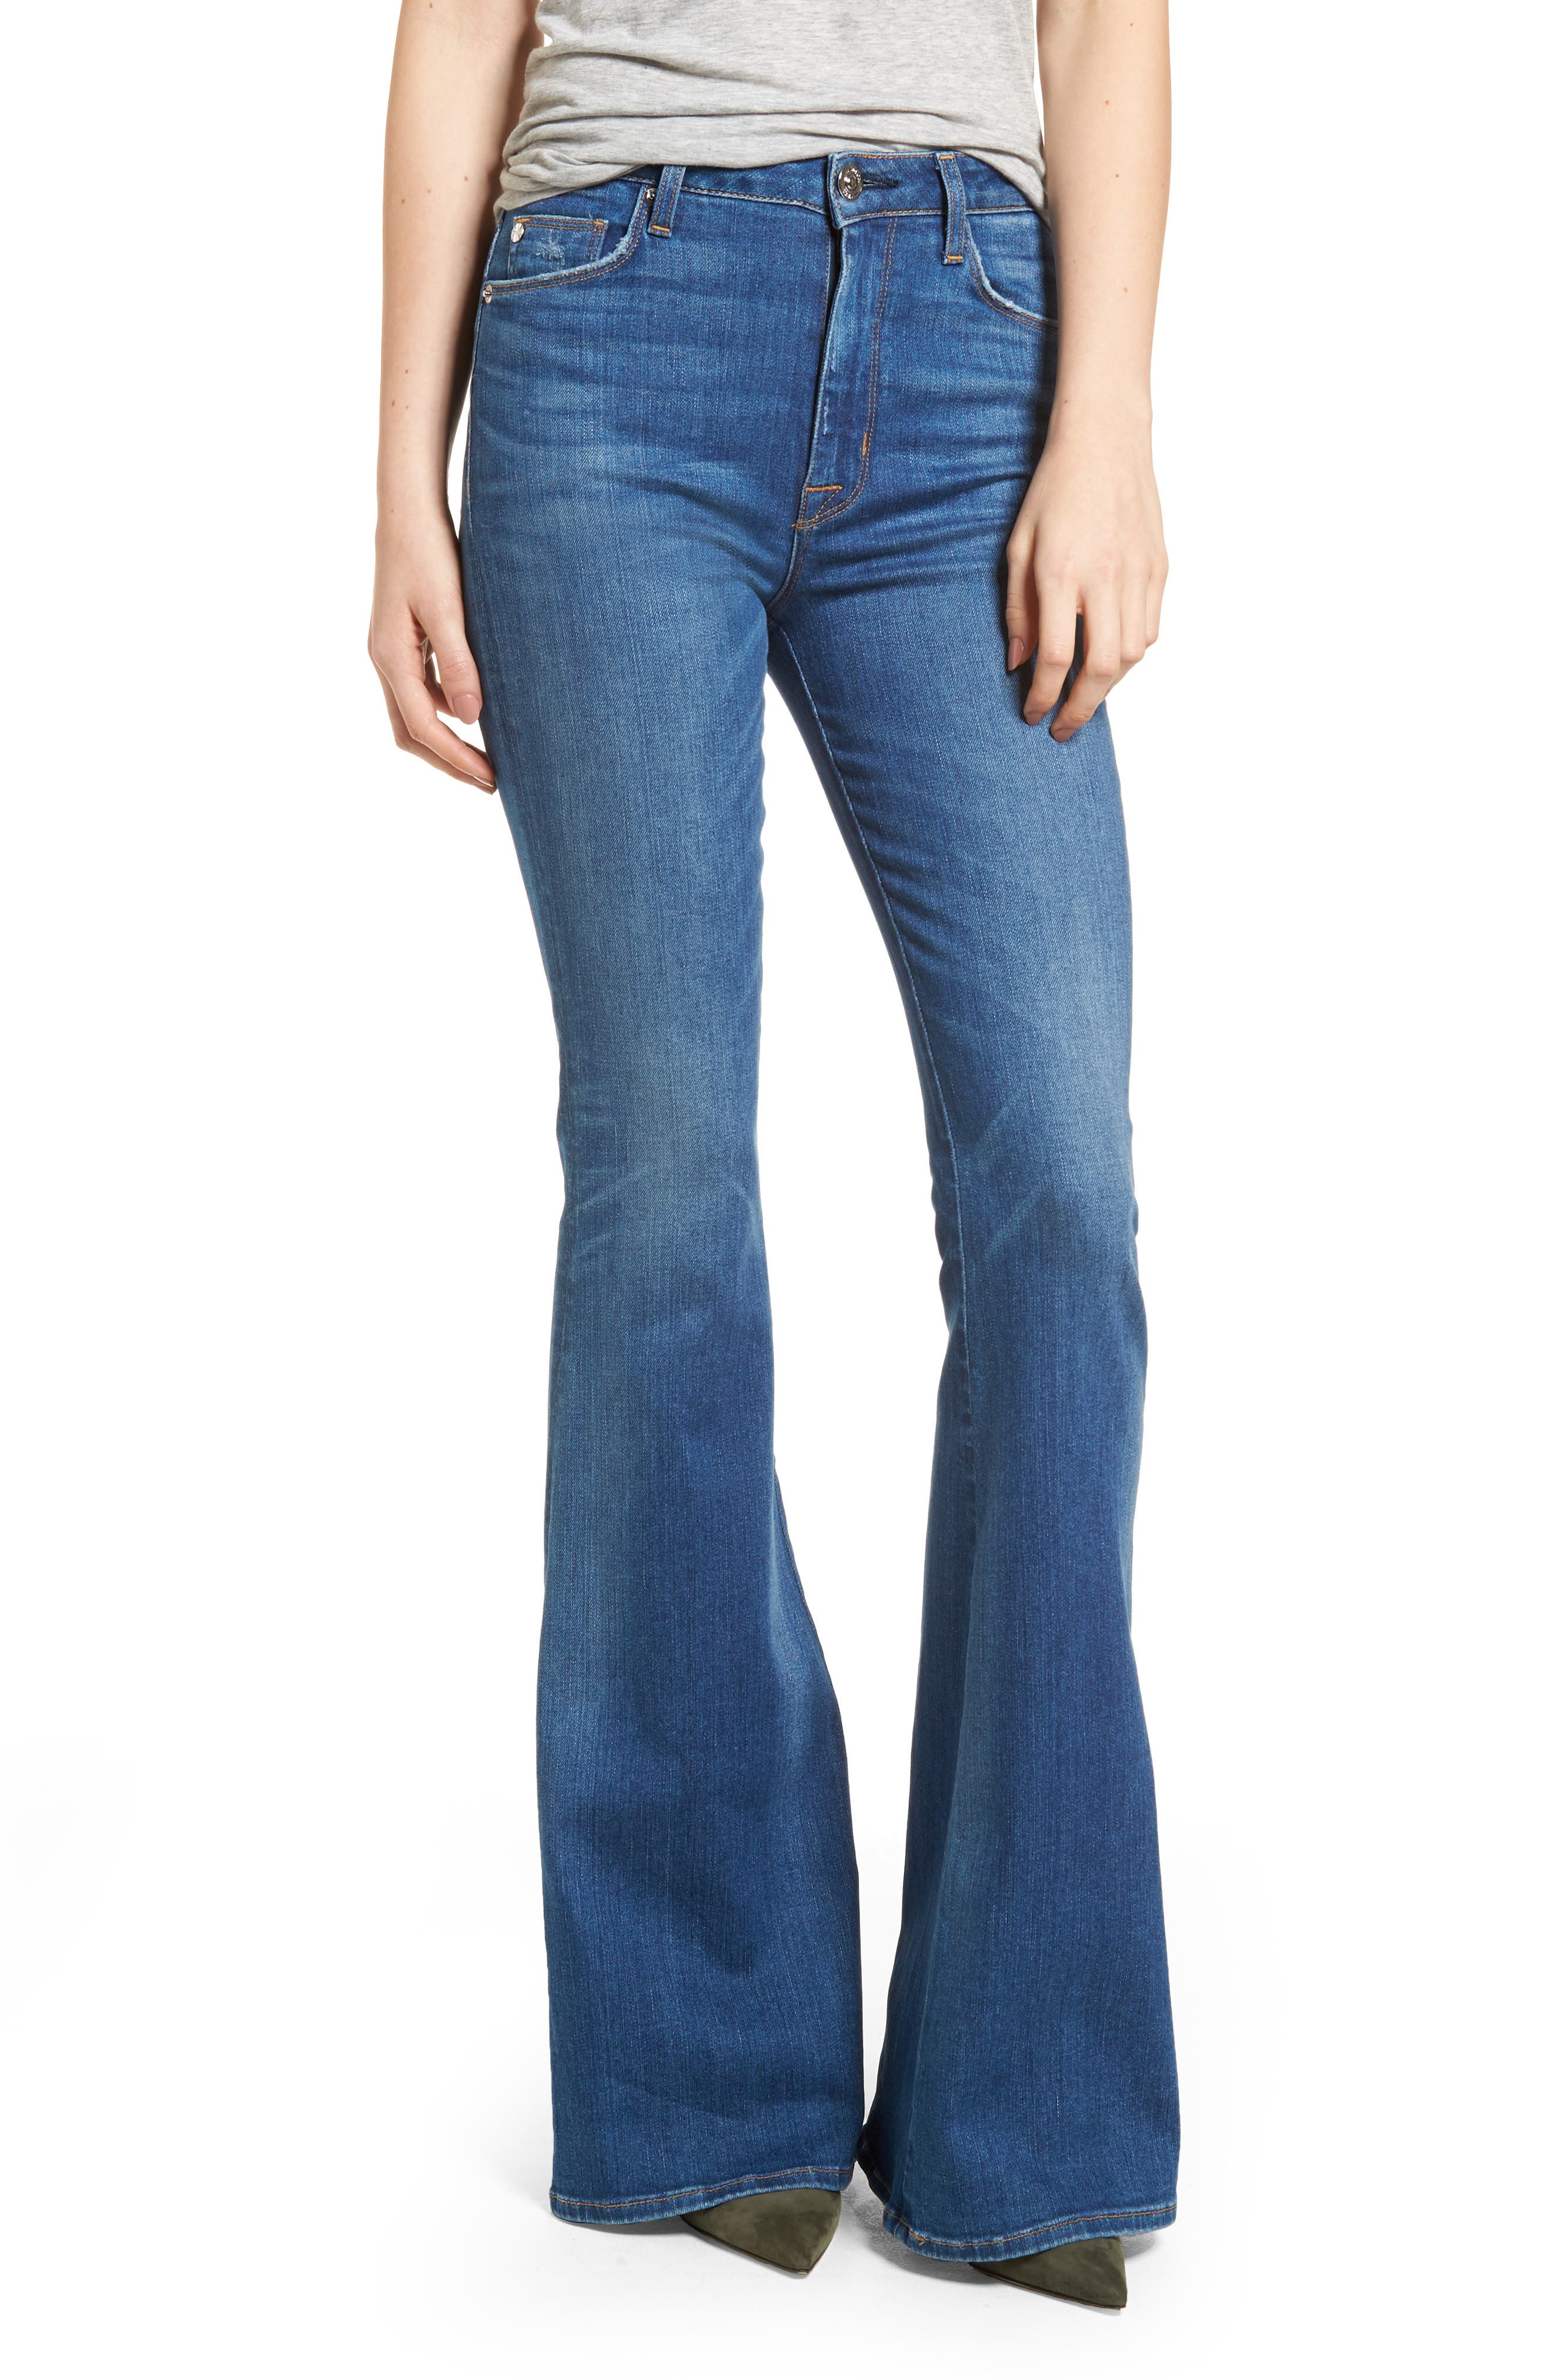 Holly High Waist Flare Jeans,                         Main,                         color, Rogue